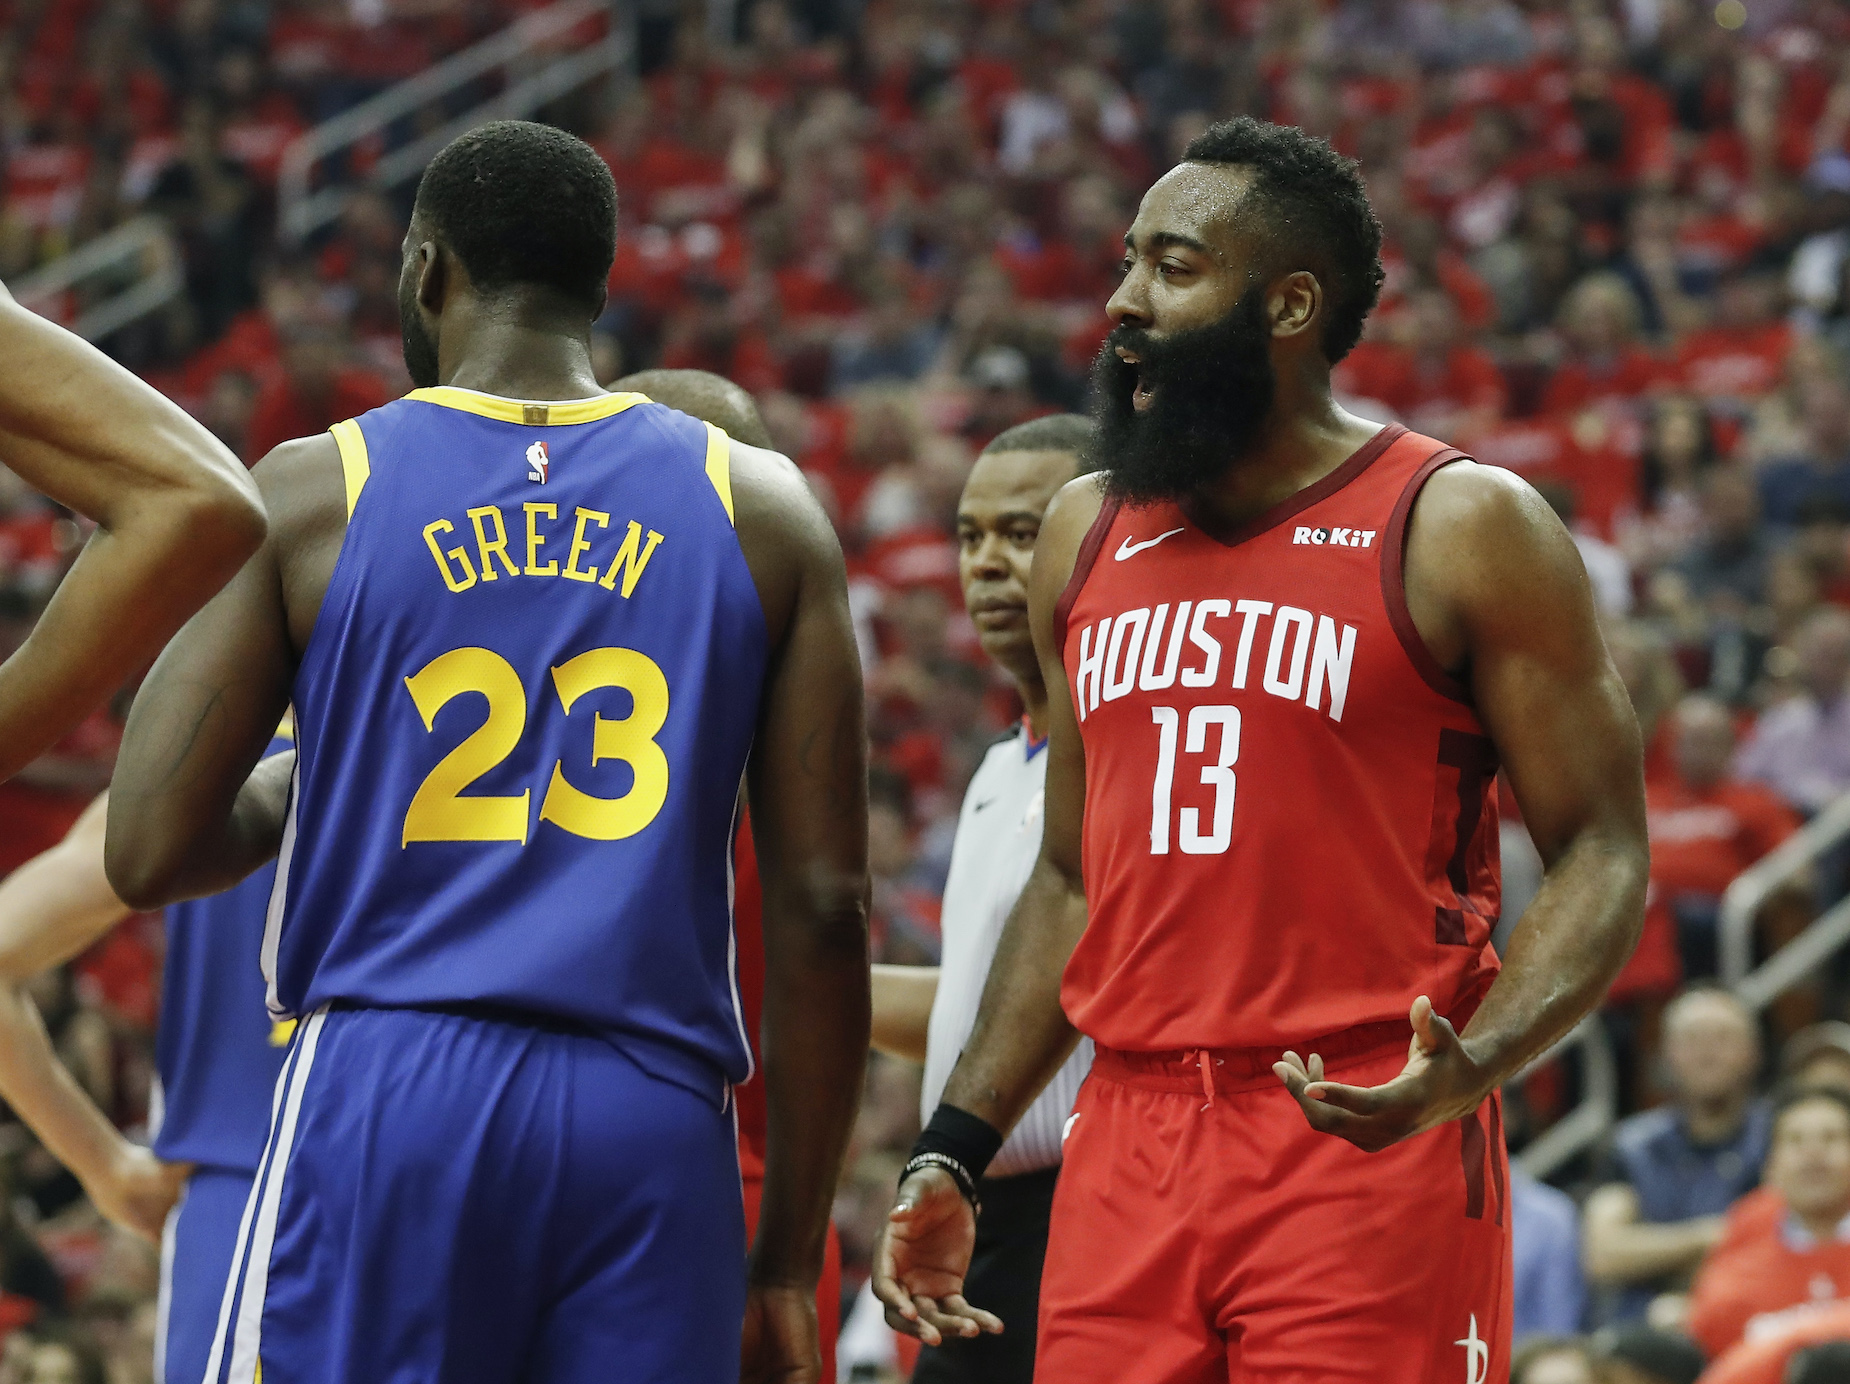 James Harden's reputation just suffered another serious blow, thanks to Draymond Green.